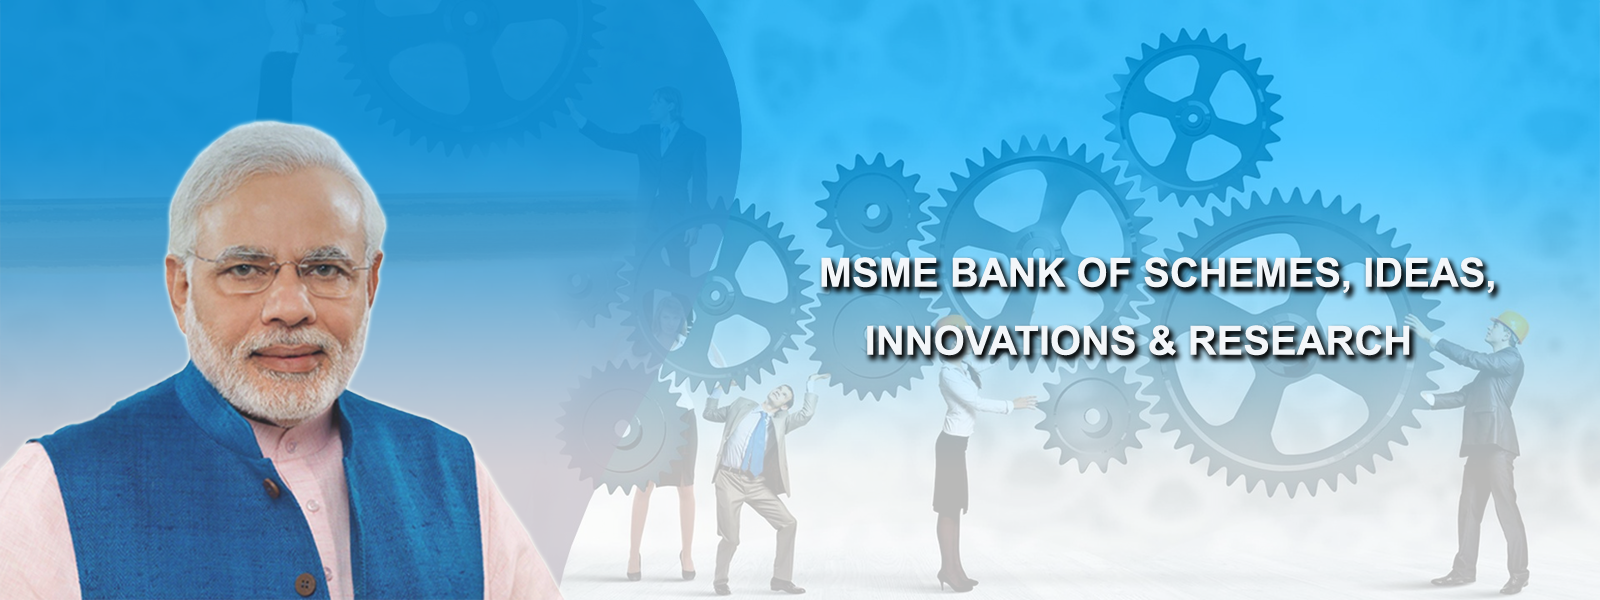 MSME Bank of Ideas, Innovations & Research